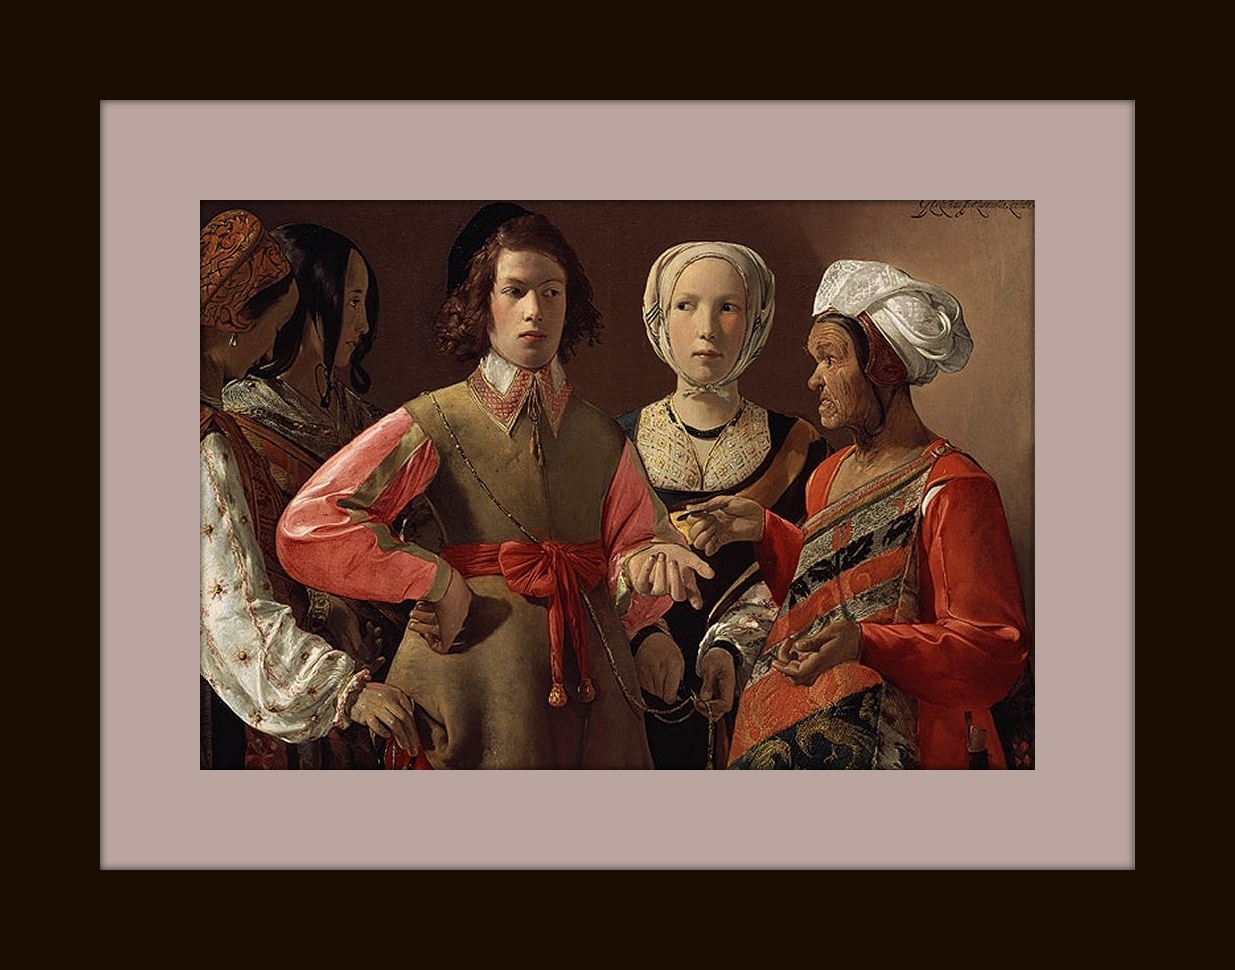 IN A REALISTIC MANNER – Georges de la Tour: using of simple lighting